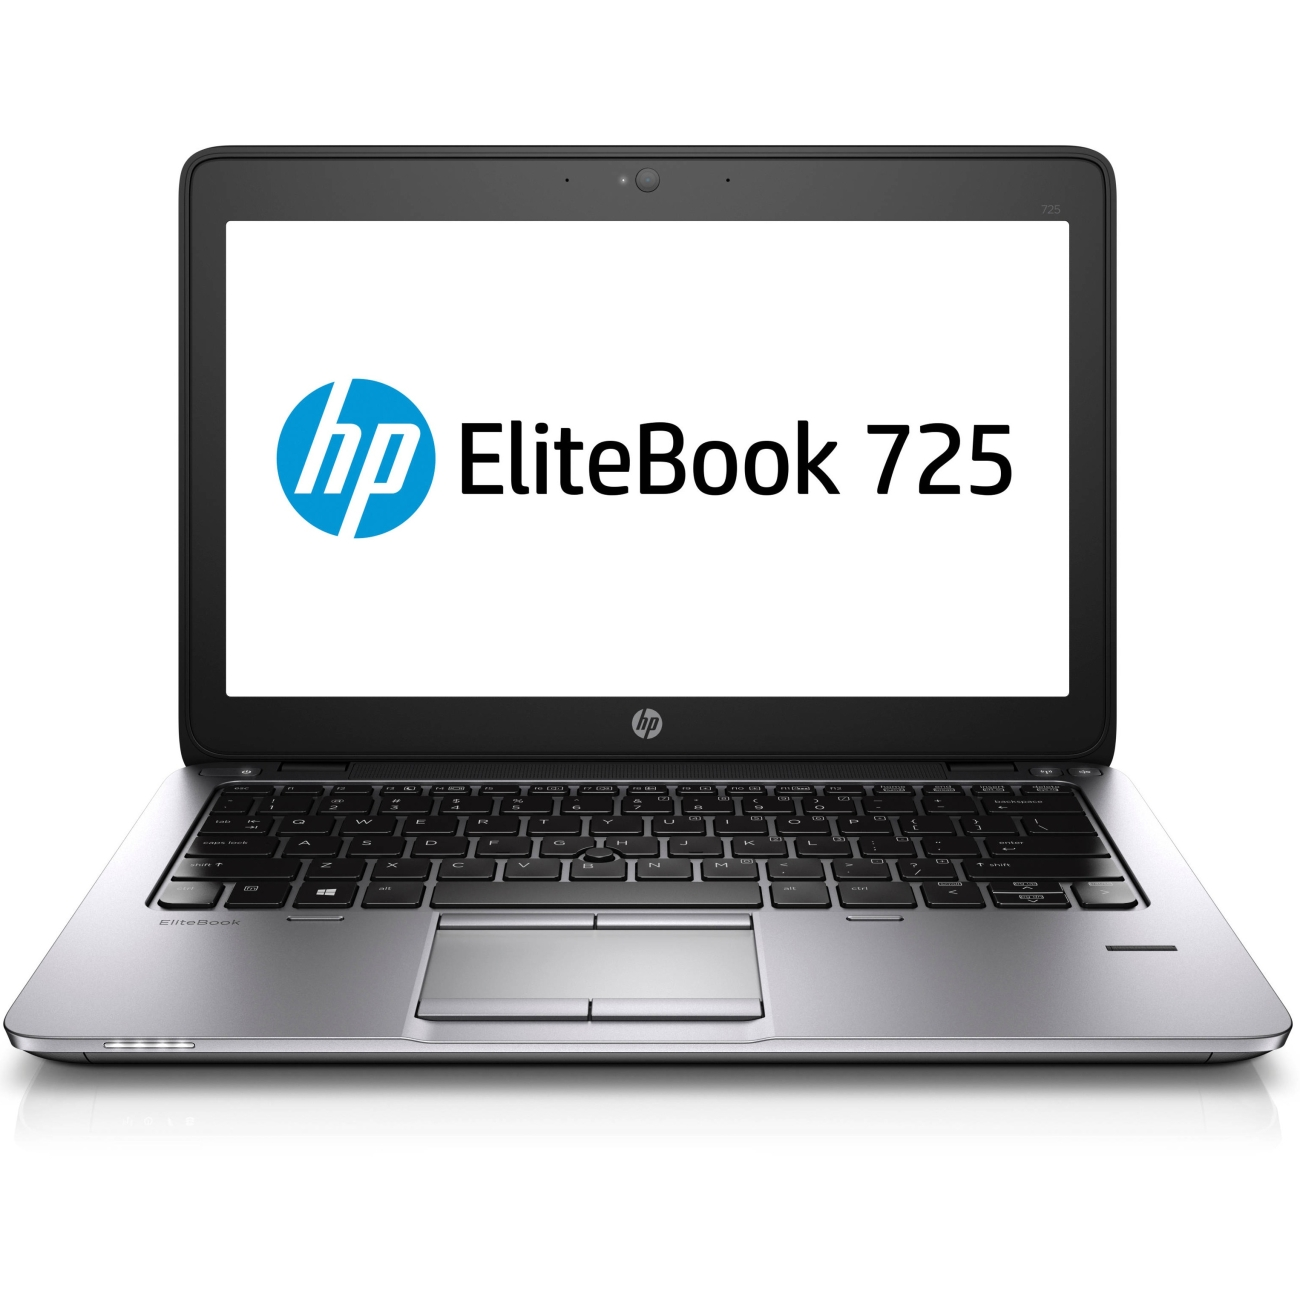 "Hp Elitebook 725 G2 12.5"" Touchscreen Notebook - Amd A-series A10 Pro-7350b Quad-core [4 Core] 2.10 Ghz - Carbon - 4 Gb Ddr3l Sdram Ram - 180 Gb Ssd - Amd Radeon R6 Ddr3l Sdram - Windows (p0b93ut-aba)"